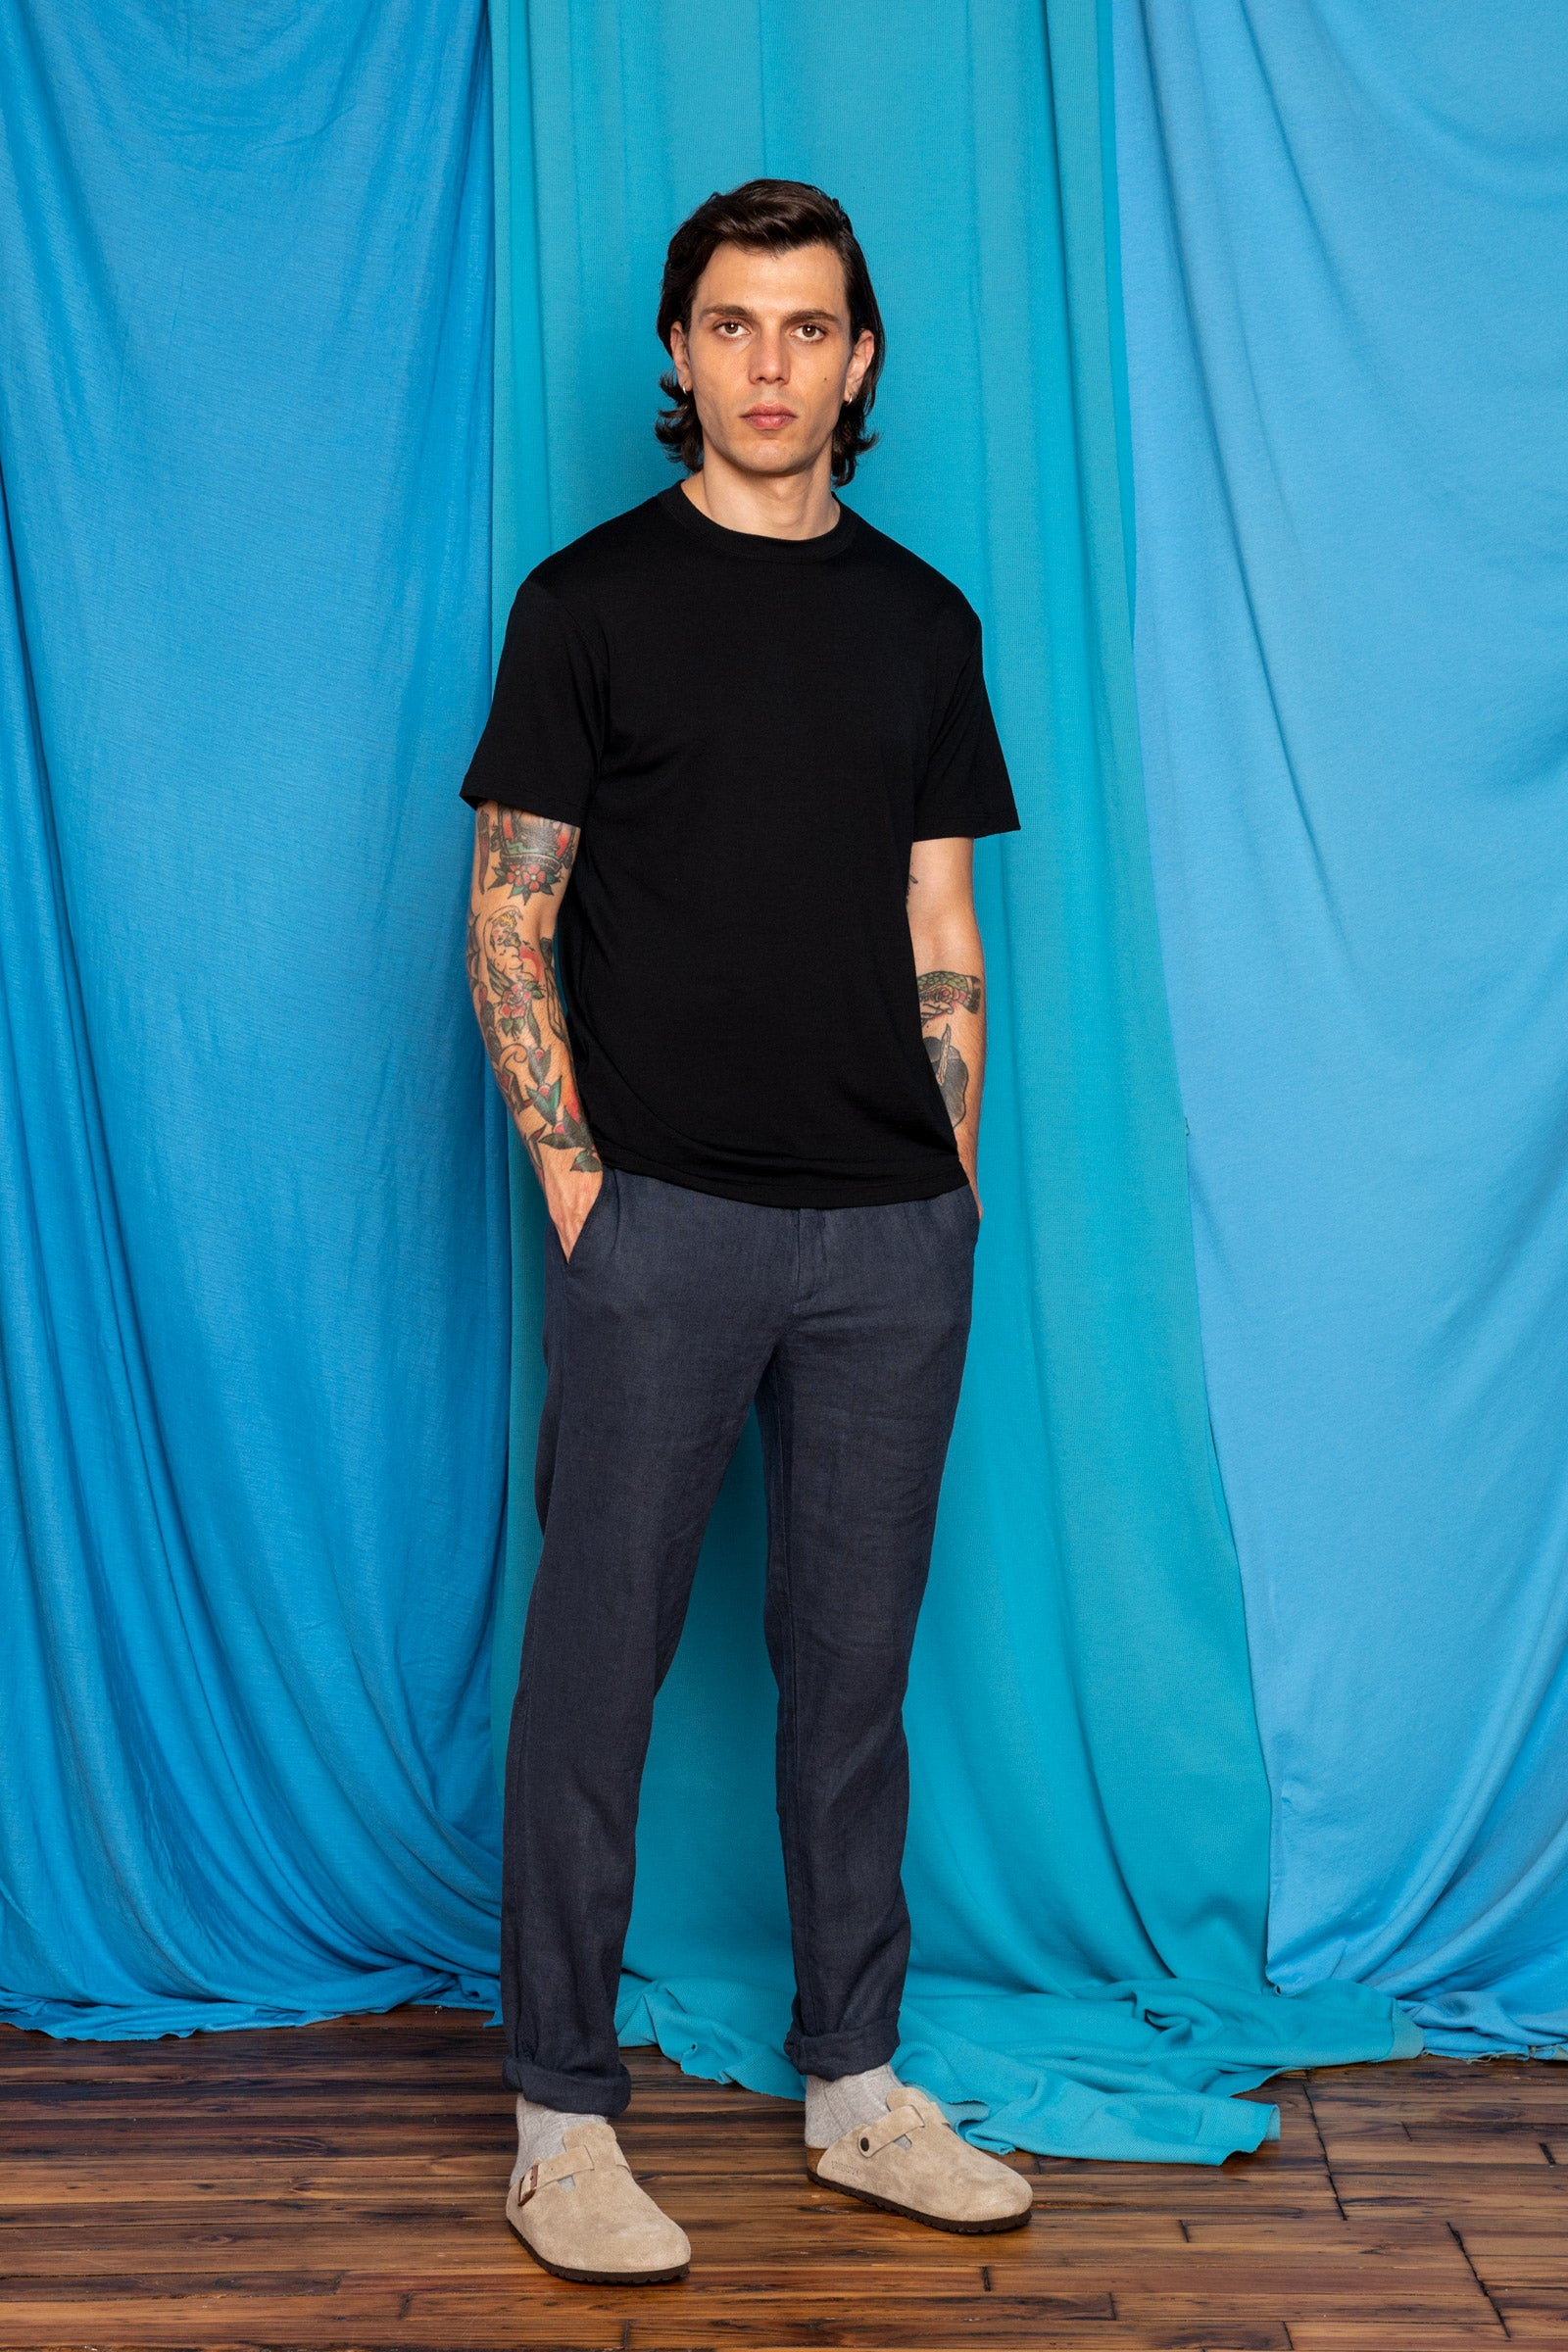 Daniele in the Black Ultrafine Merino Cut Two T-Shirt and Ramiefall Pants , angled front view, hands in pockets